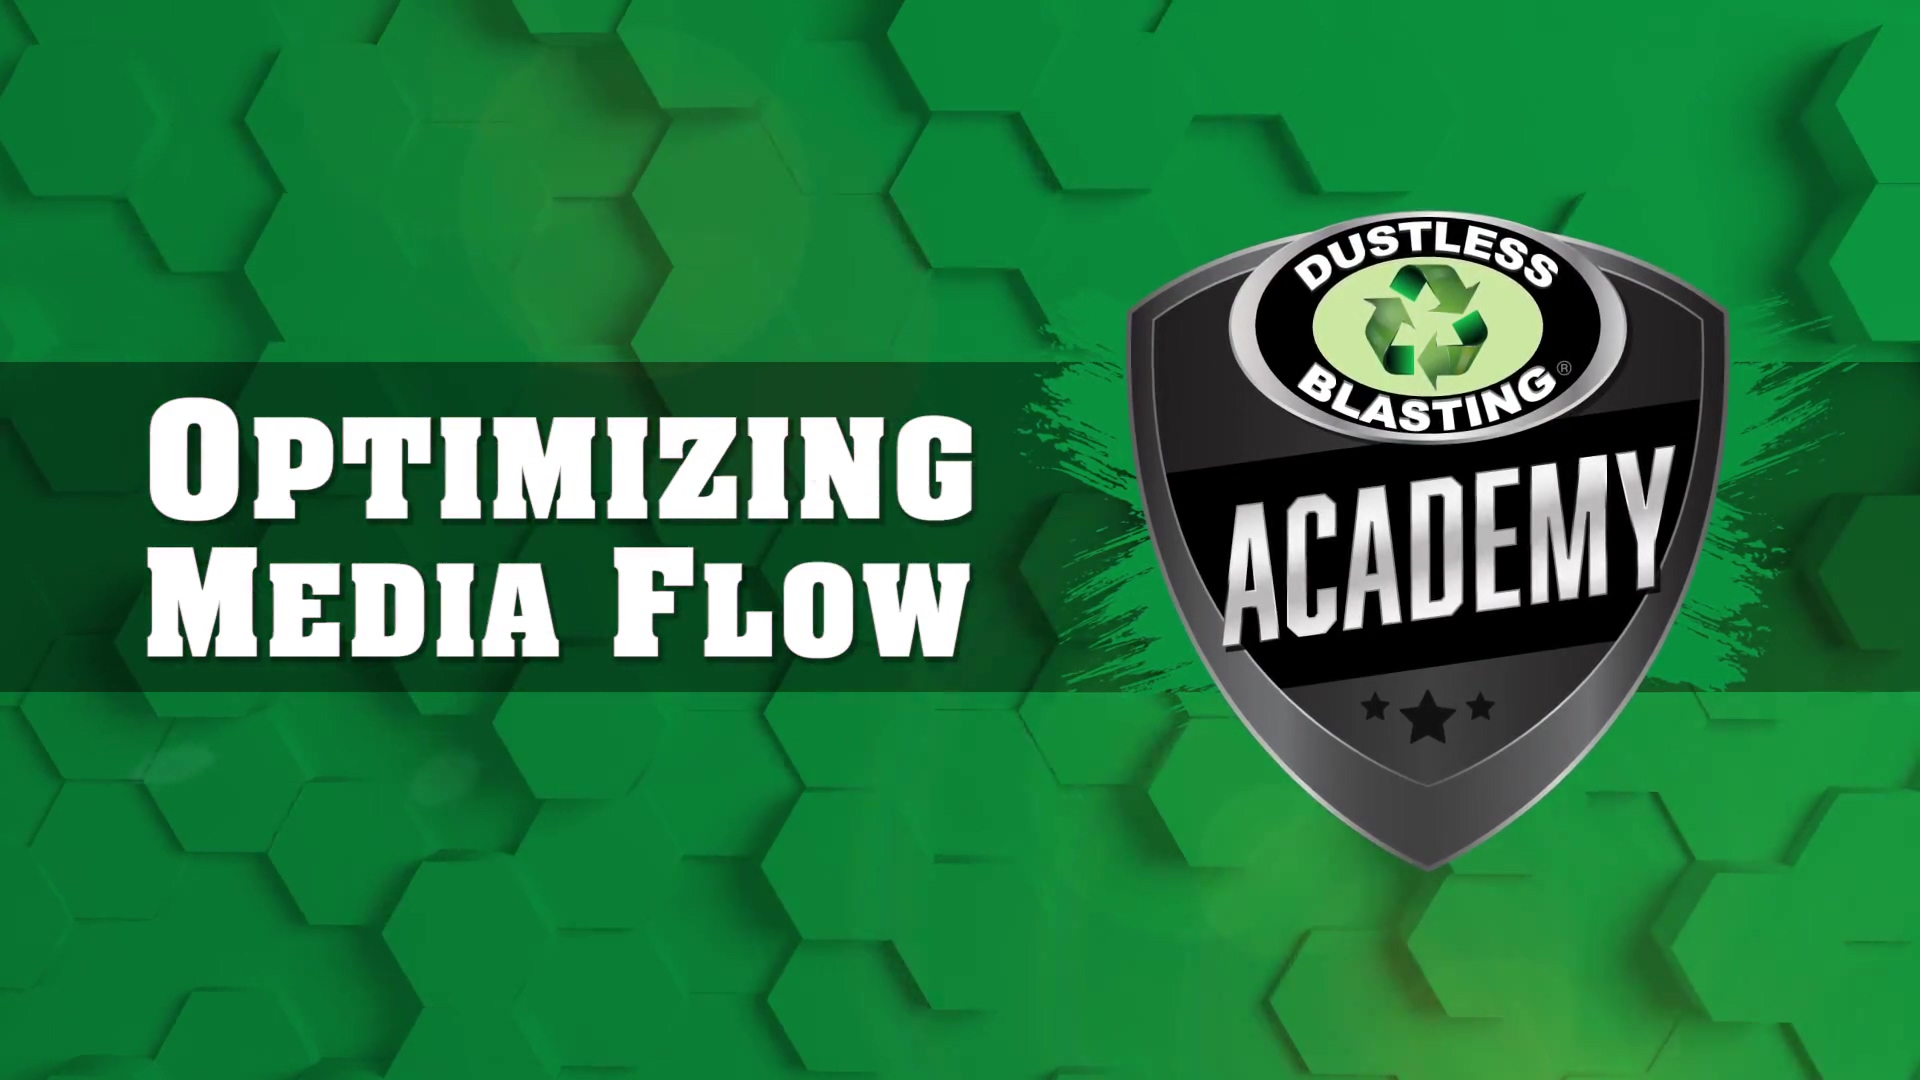 DB Academy - Optimizing Media Flow